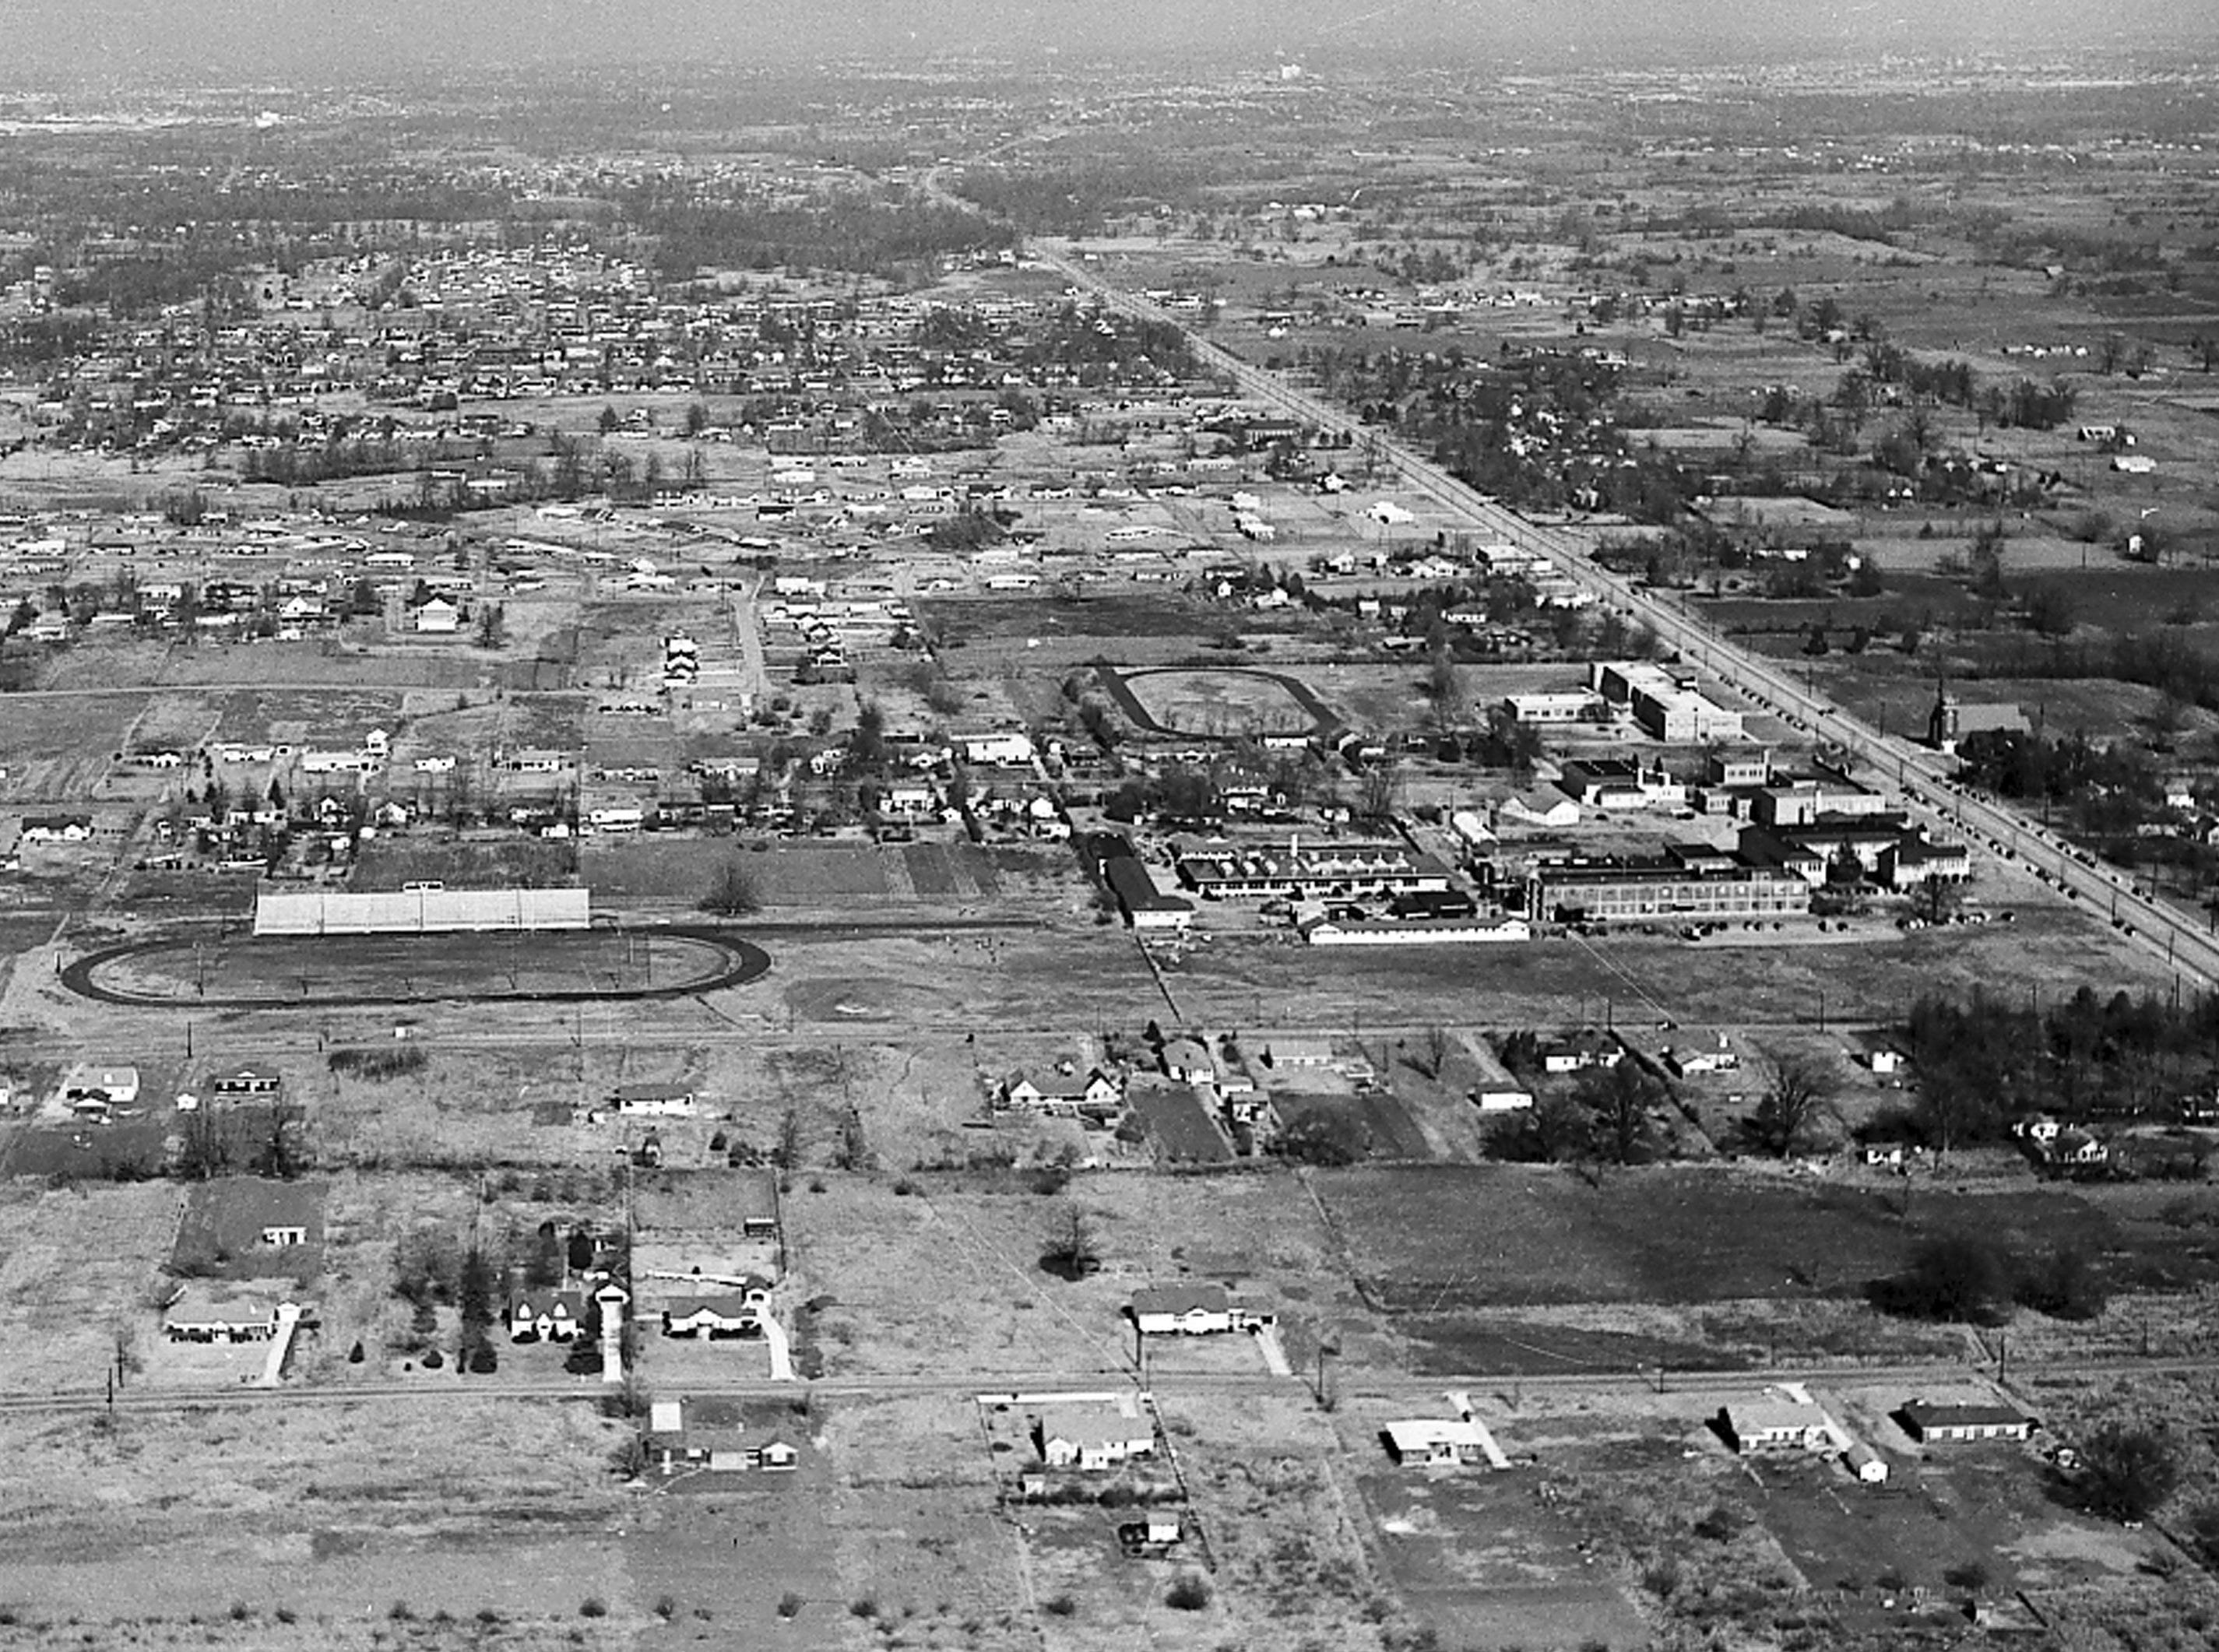 The southern area of Whitehaven is seen in this photograph from July 1953. Palmer Road is visible in the foreground and Elvis Presley Boulevard is running diagonally at right. Whitehaven High School is at extreme right center. The oval at left center is the football stadium behind Whitehaven High School. Whitehaven Baptist Church is seen at far right center. The photograph is taken looking toward the north.